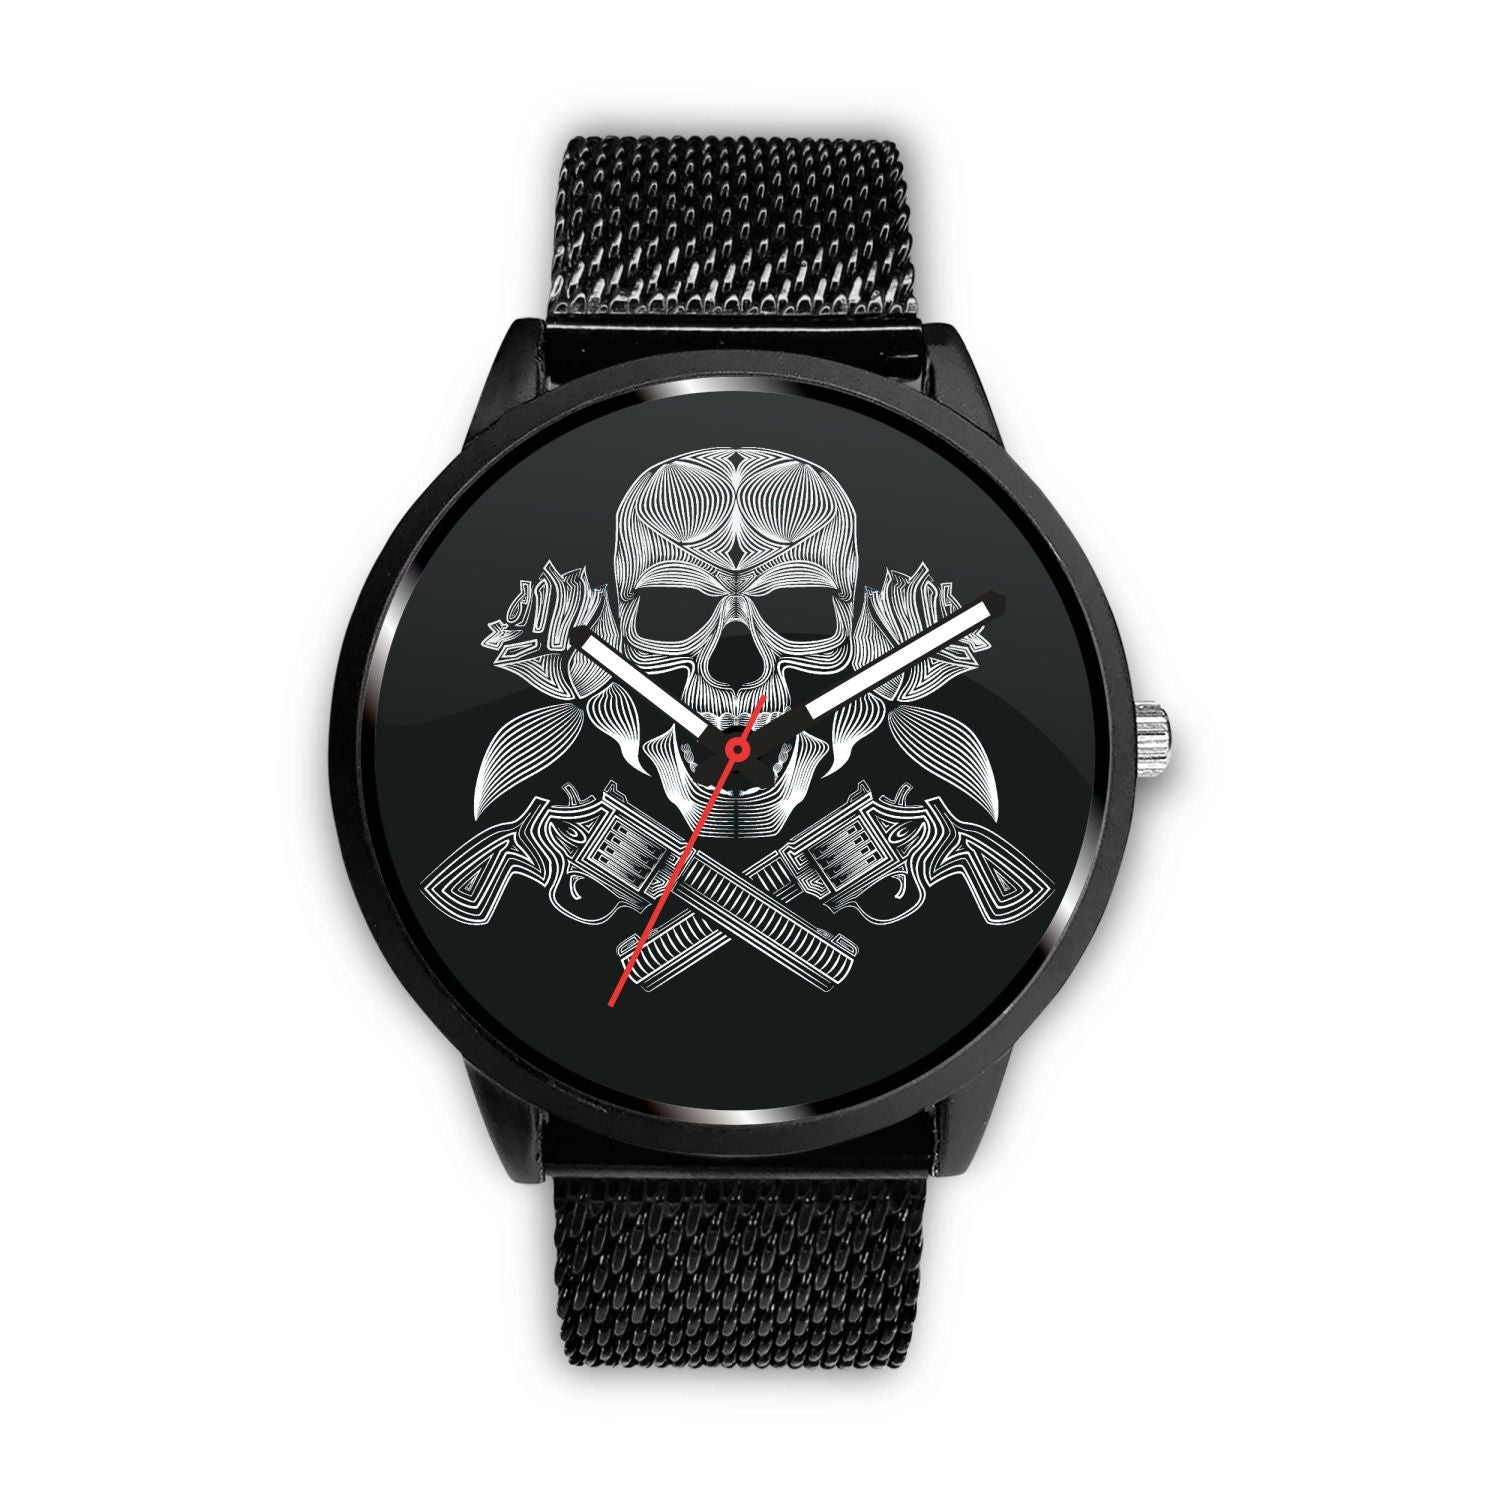 Guns Skull & Roses Watch-Watch-wc-fulfillment-Mens 40mm-Metal Mesh-SKULLZOPHRENIA